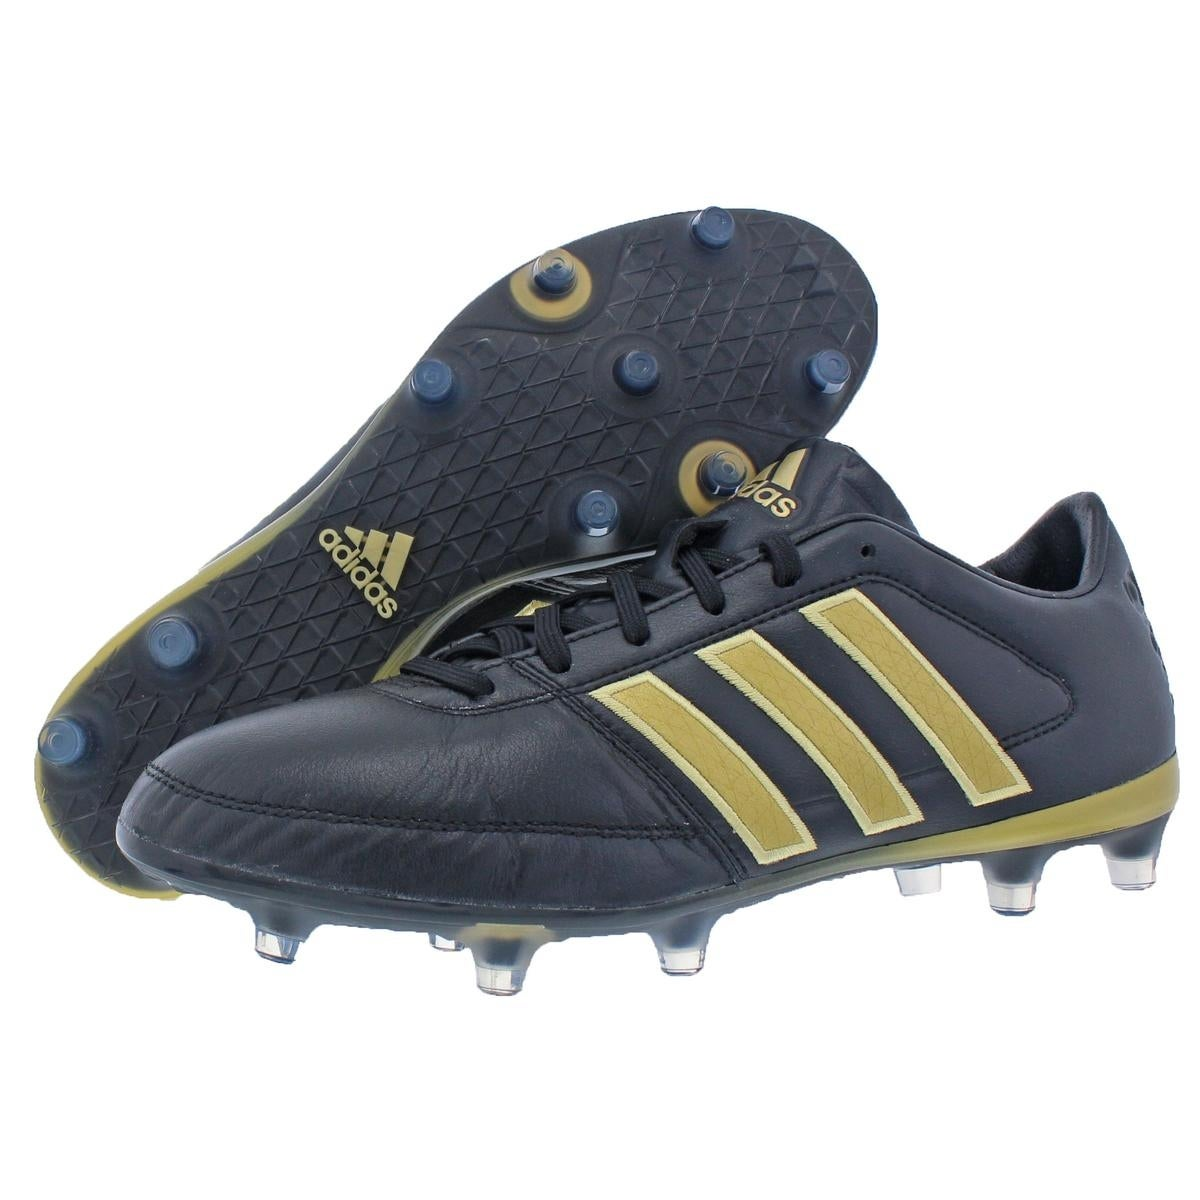 6008236a9399 Shop Adidas Mens Gloro 16.1 FG Cleats Soccer Performance - 7 medium (d) -  Free Shipping Today - Overstock - 22491661